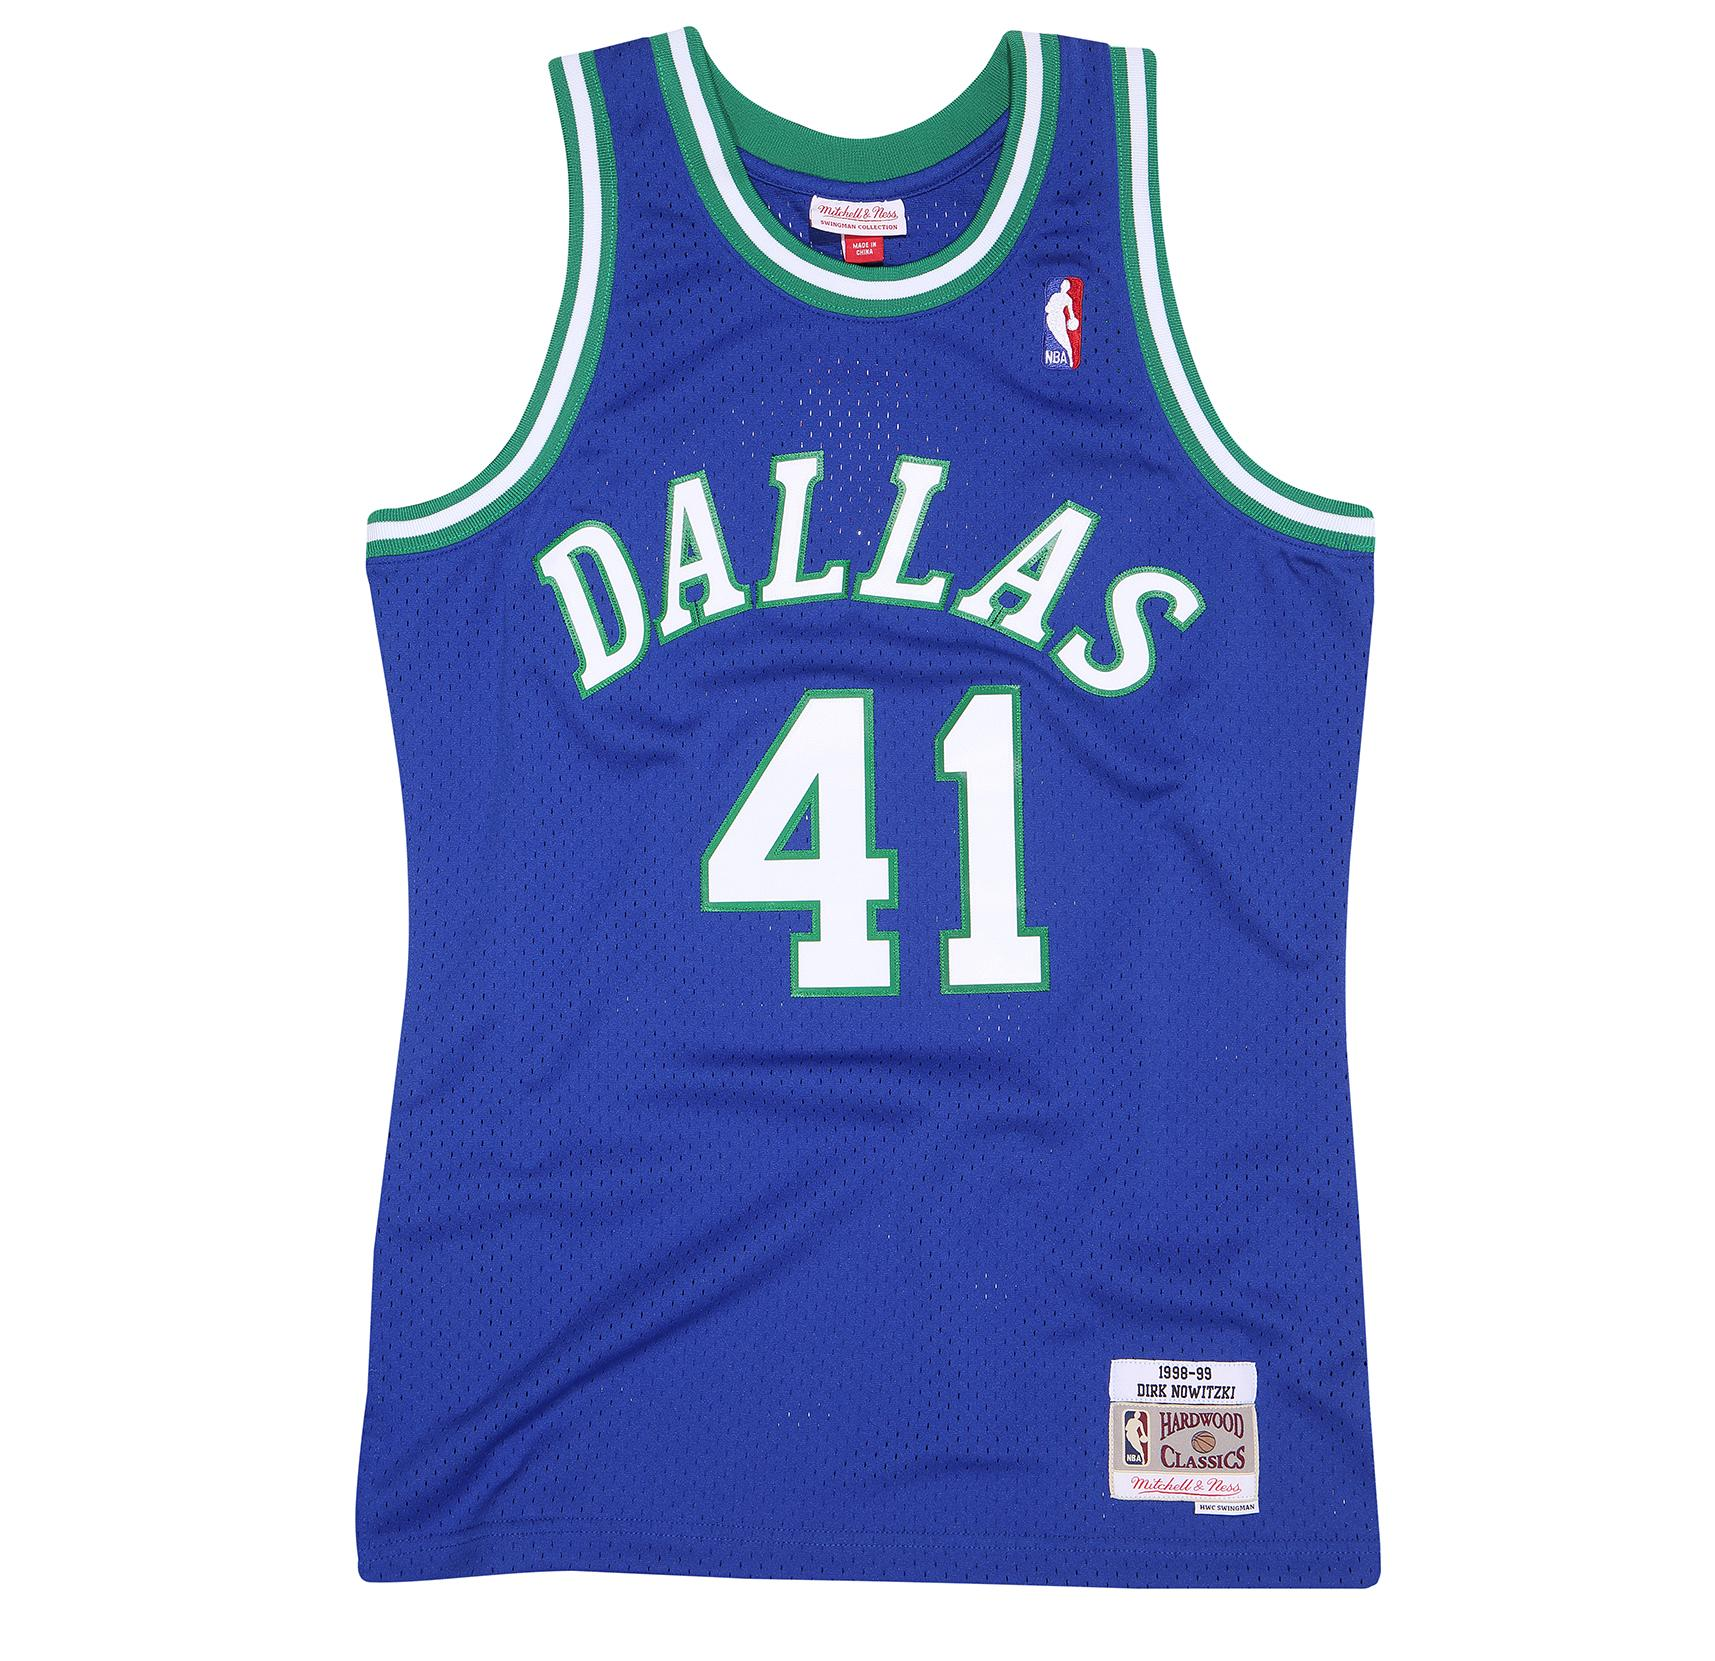 ... Nowitzki 1998-99 Swingman Jersey Our Price  £90.00 ... ded798e86